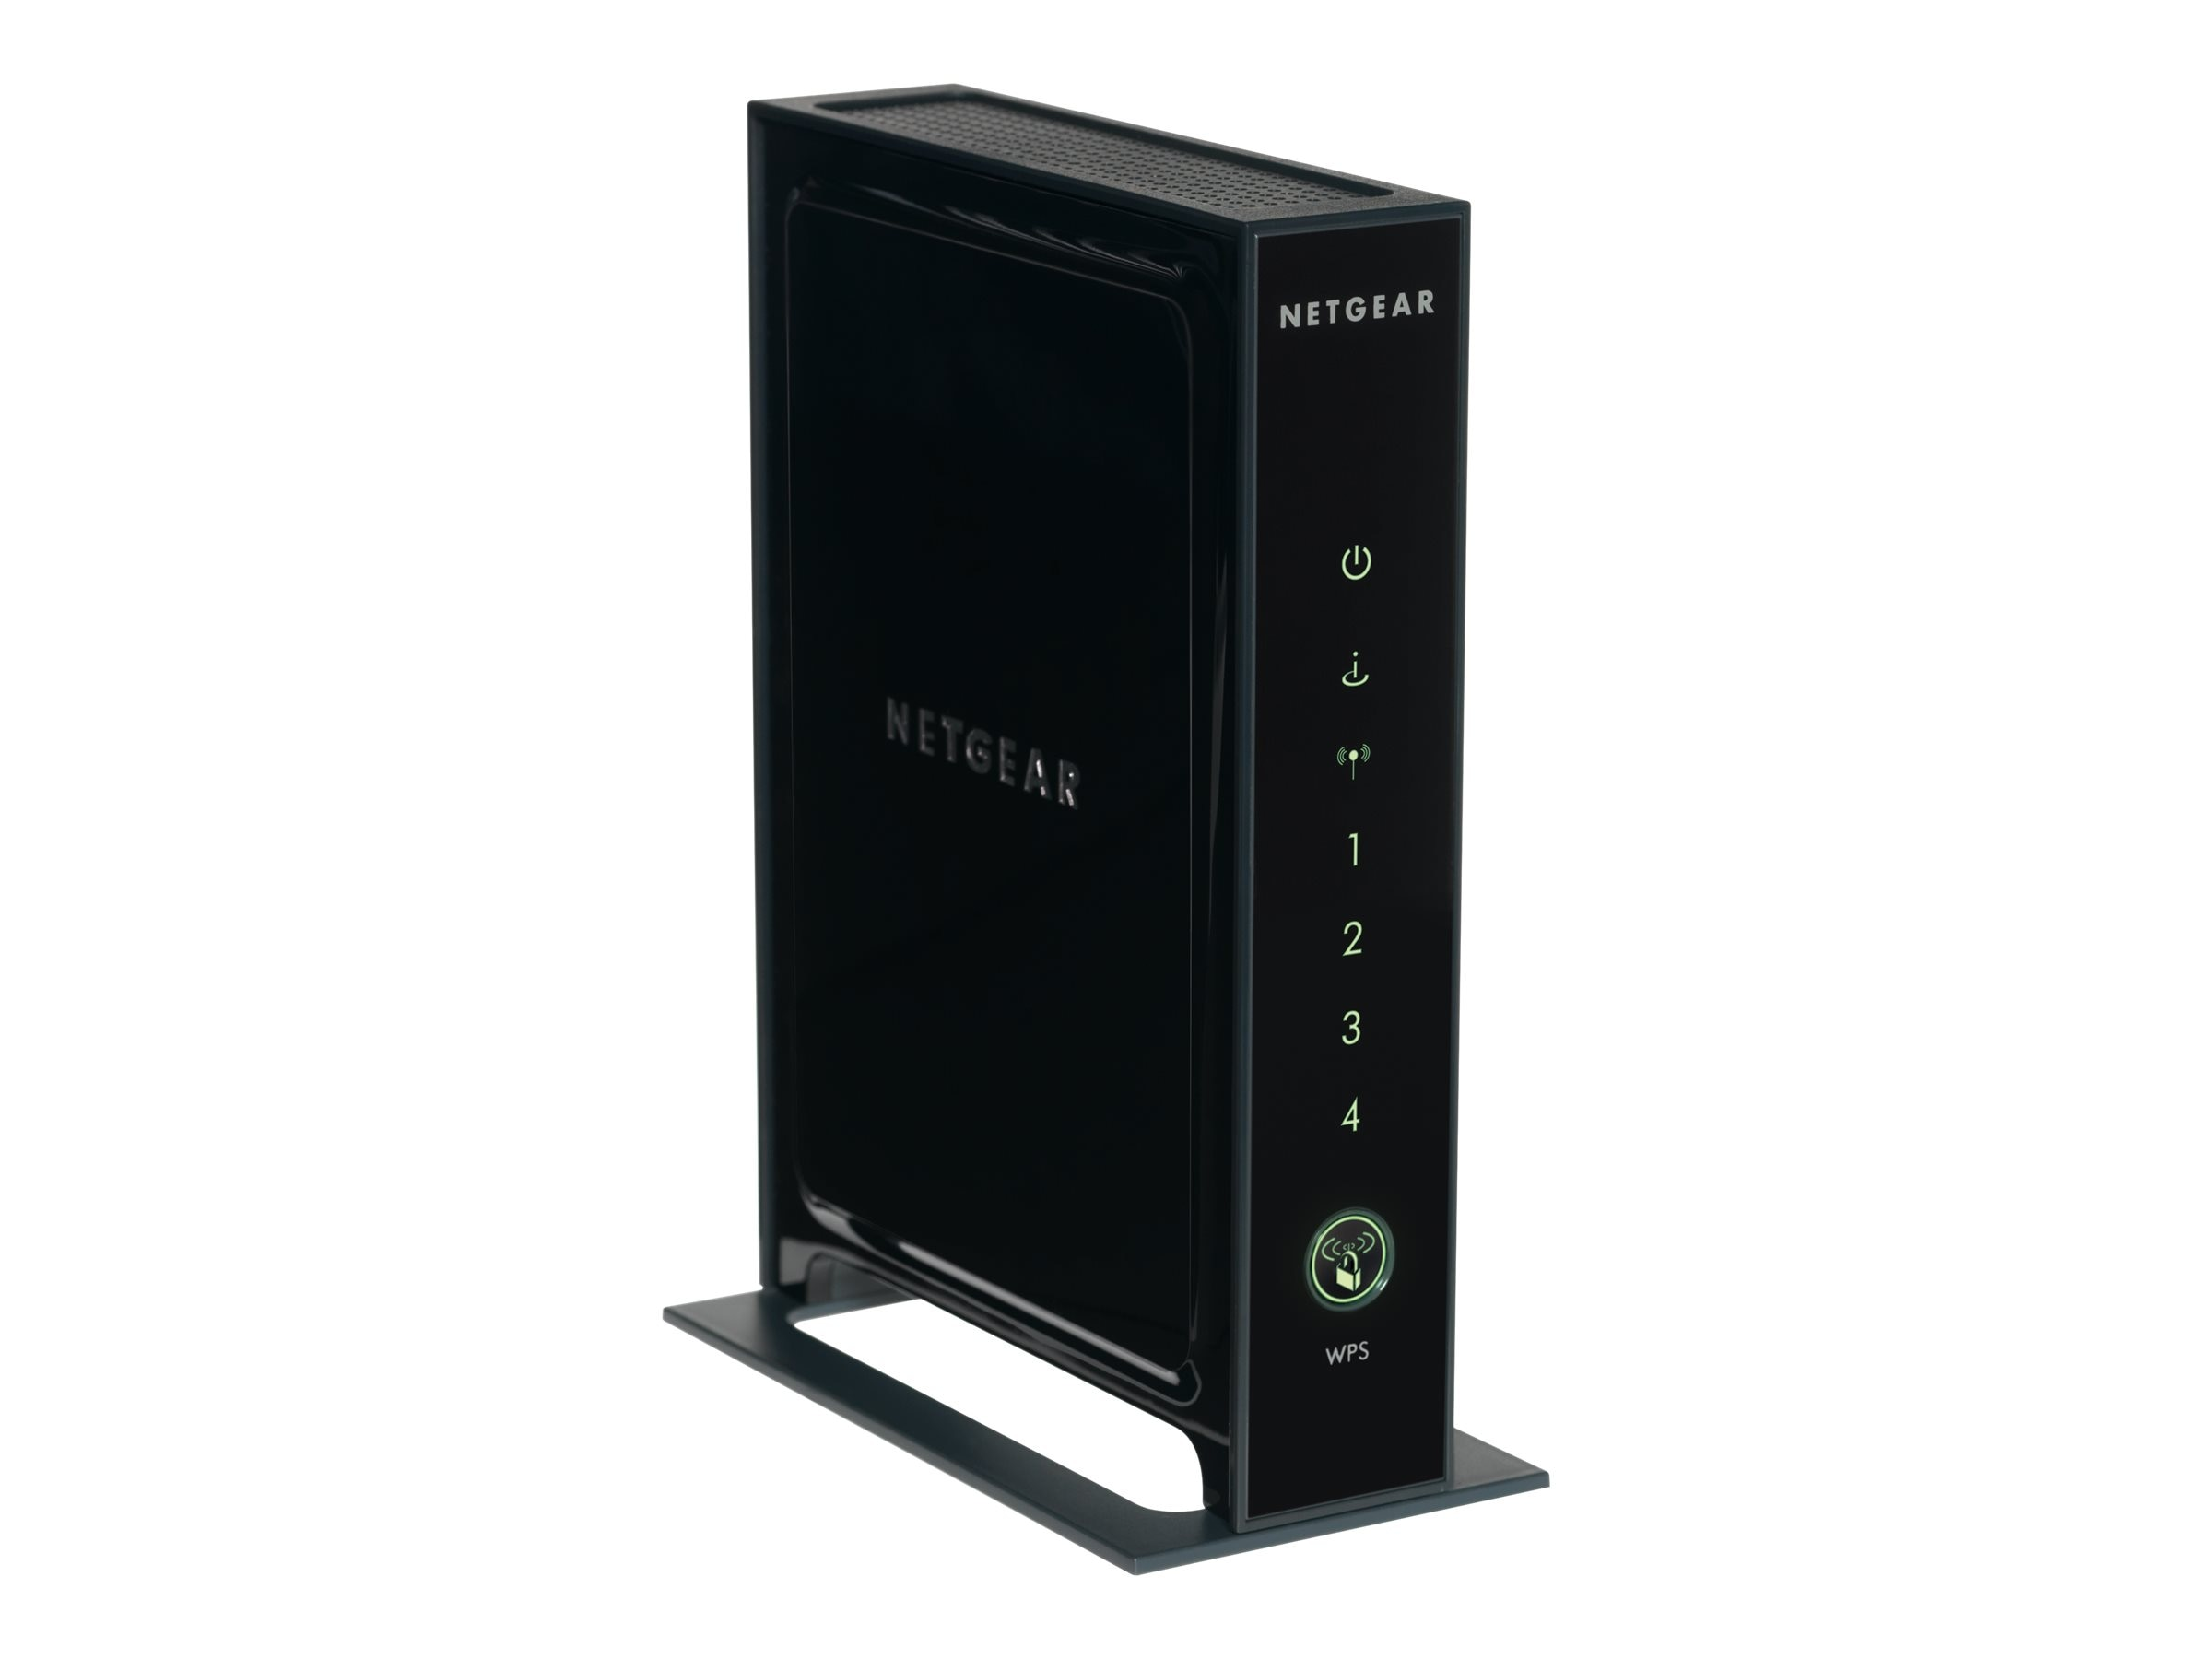 Netgear RangeMax Open Source Wireless N Router